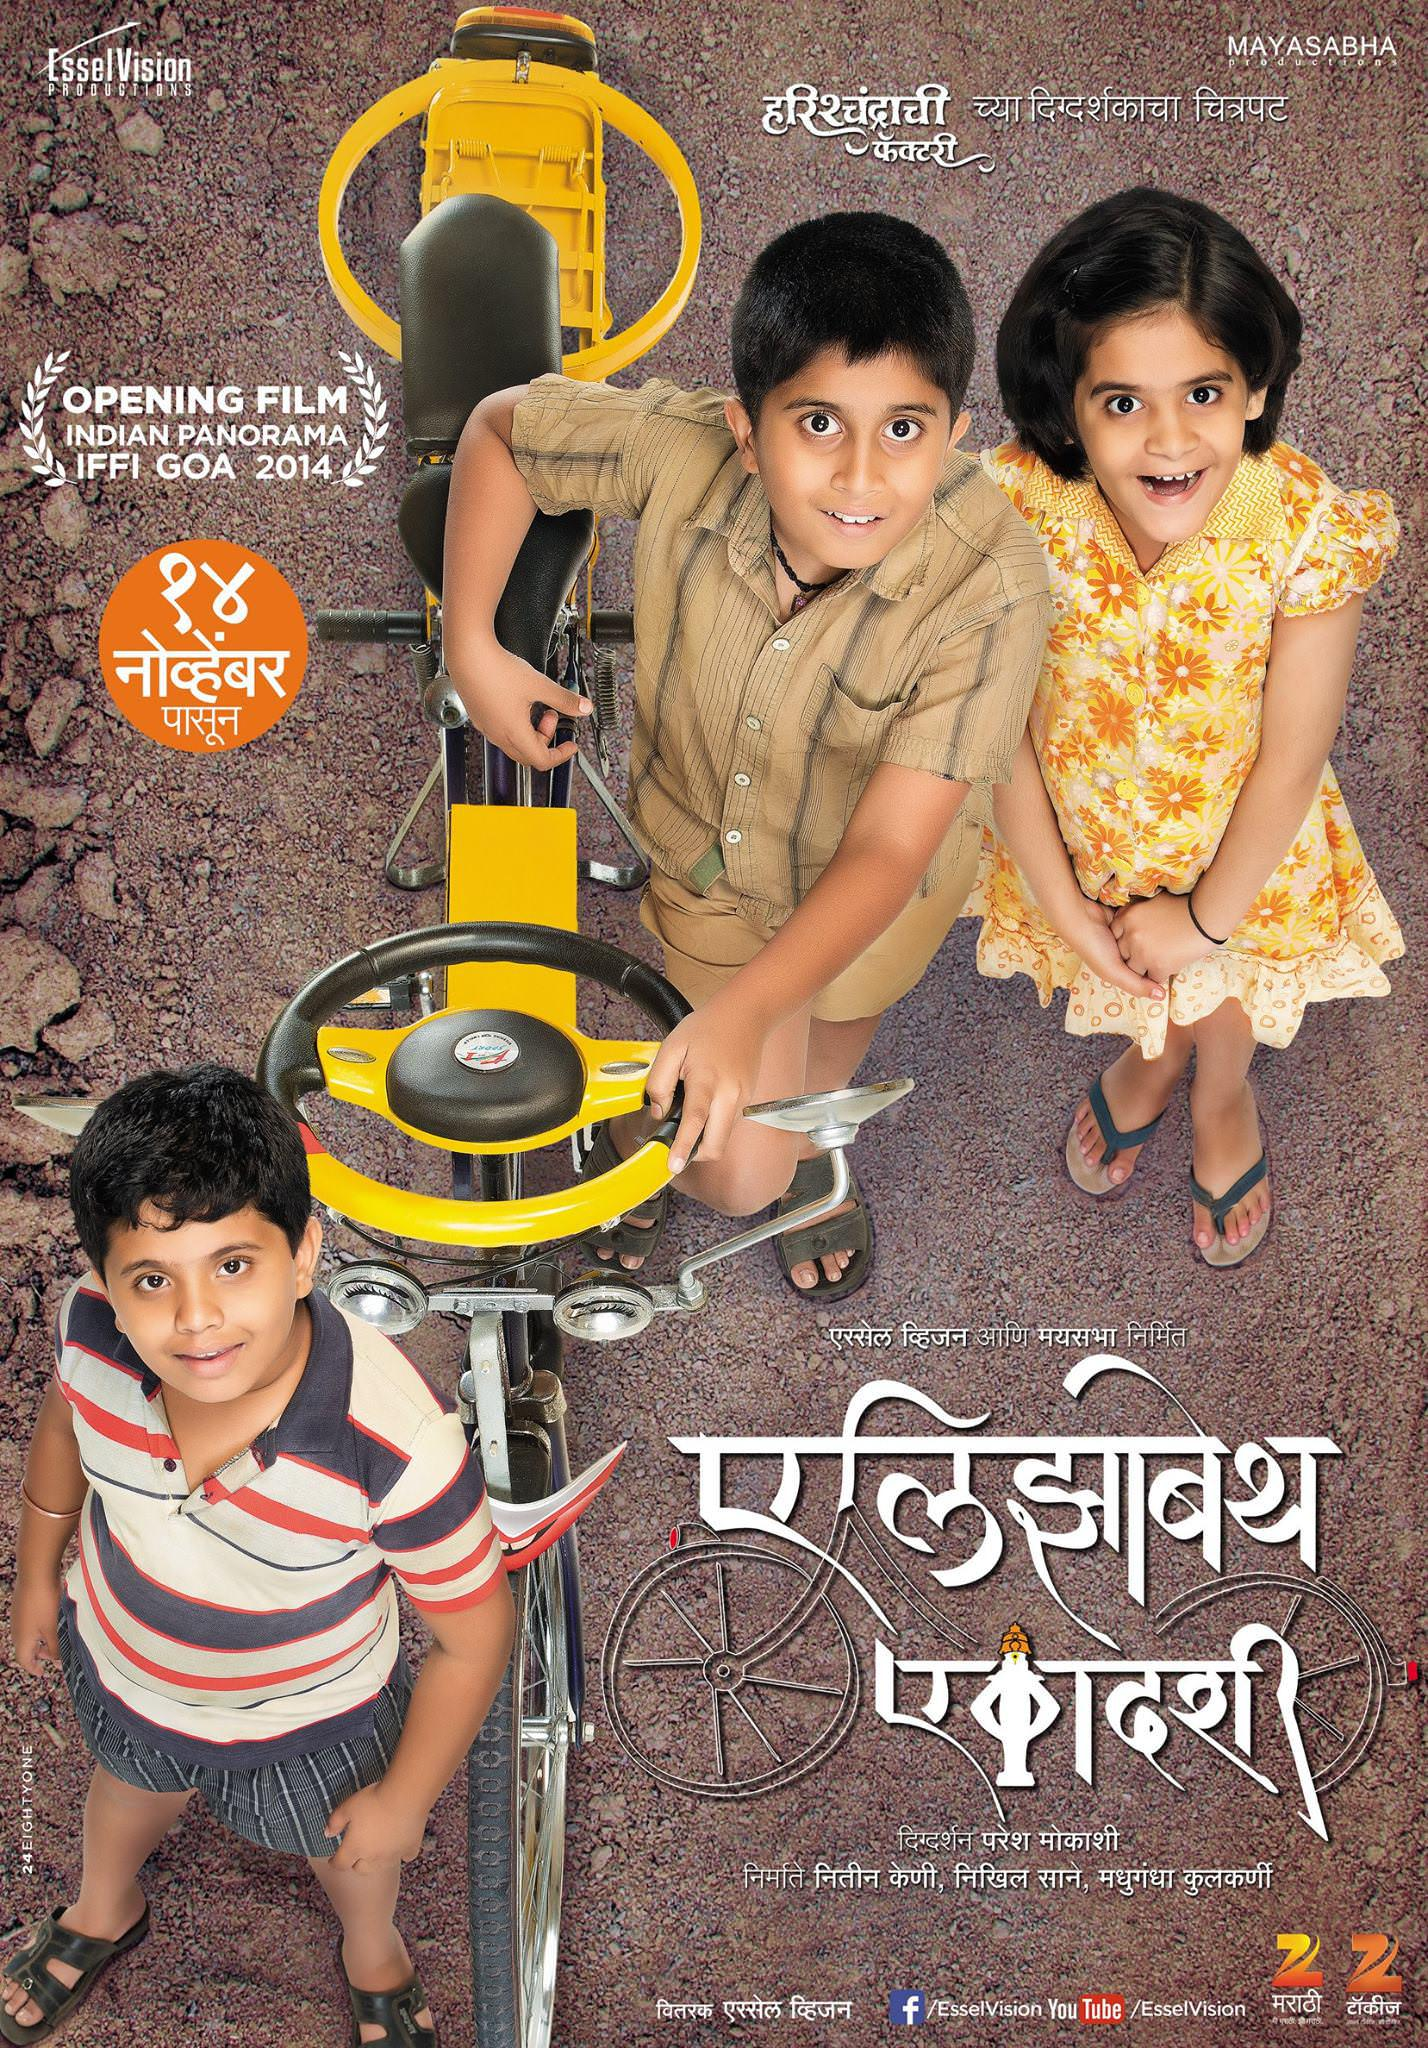 Marathi movie download: movies for free, upcoming marathi movies.